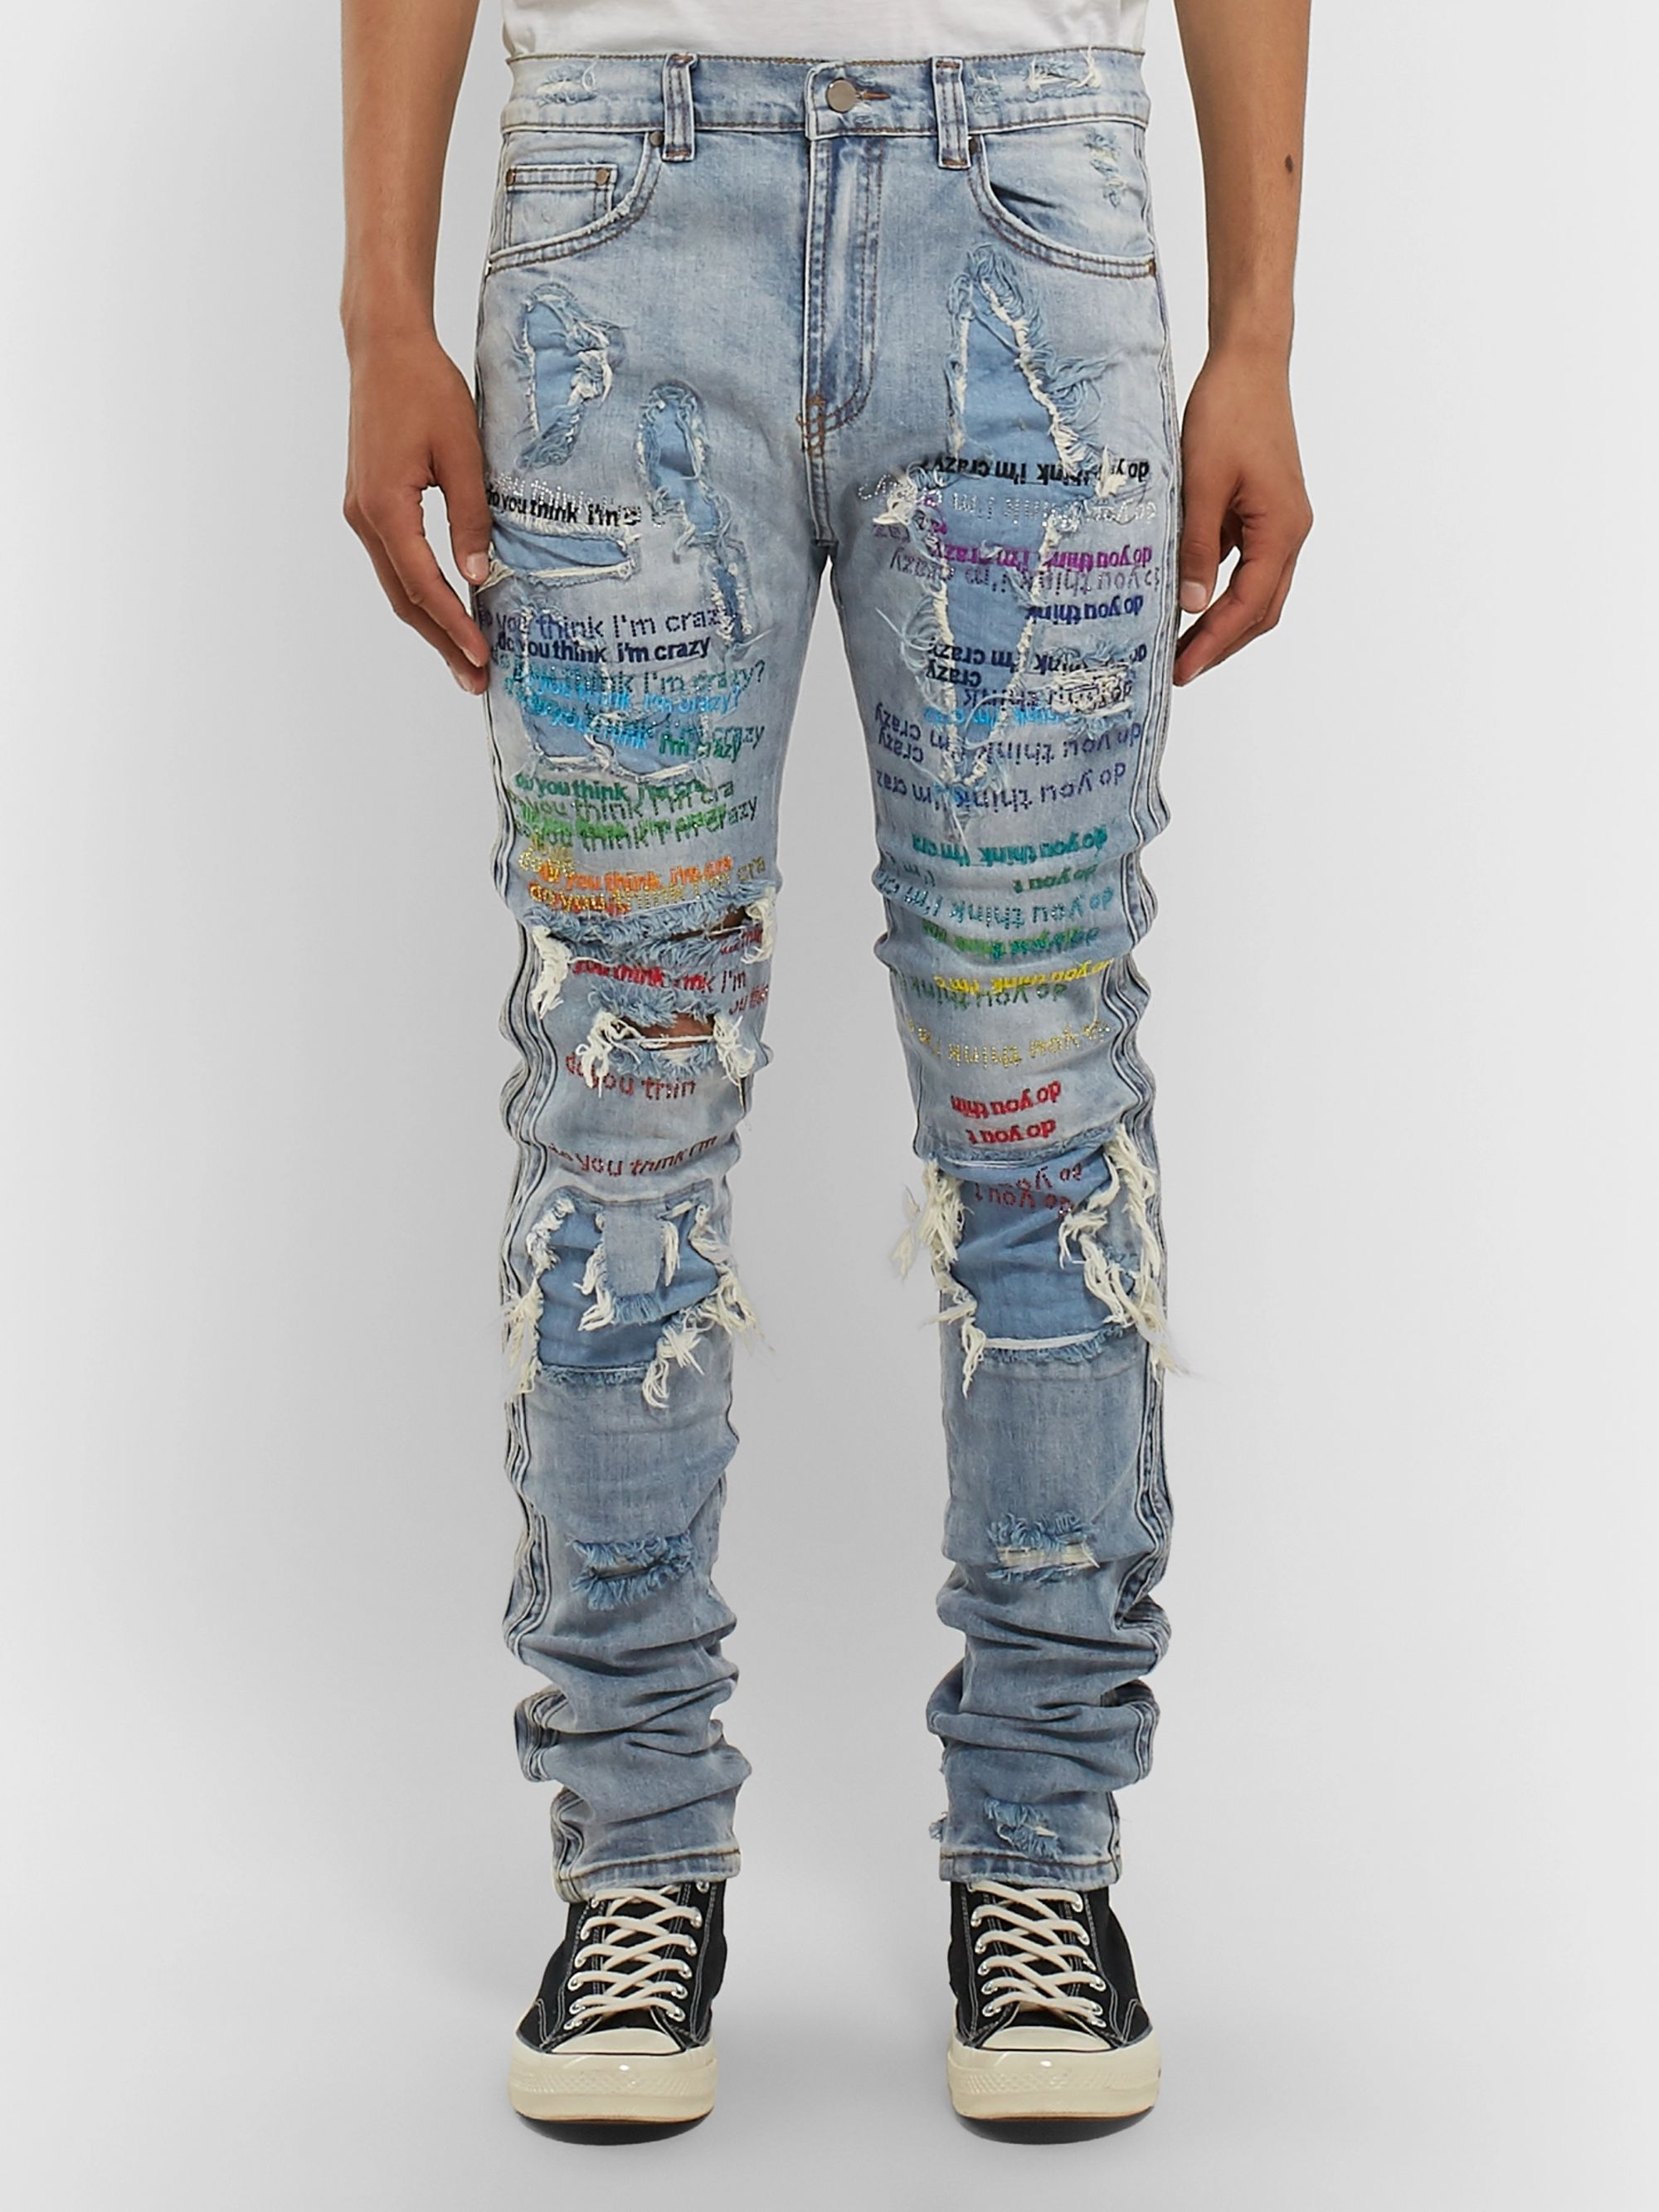 EV BRAVADO Skinny-Fit Embellished Embroidered Distressed Denim Jeans